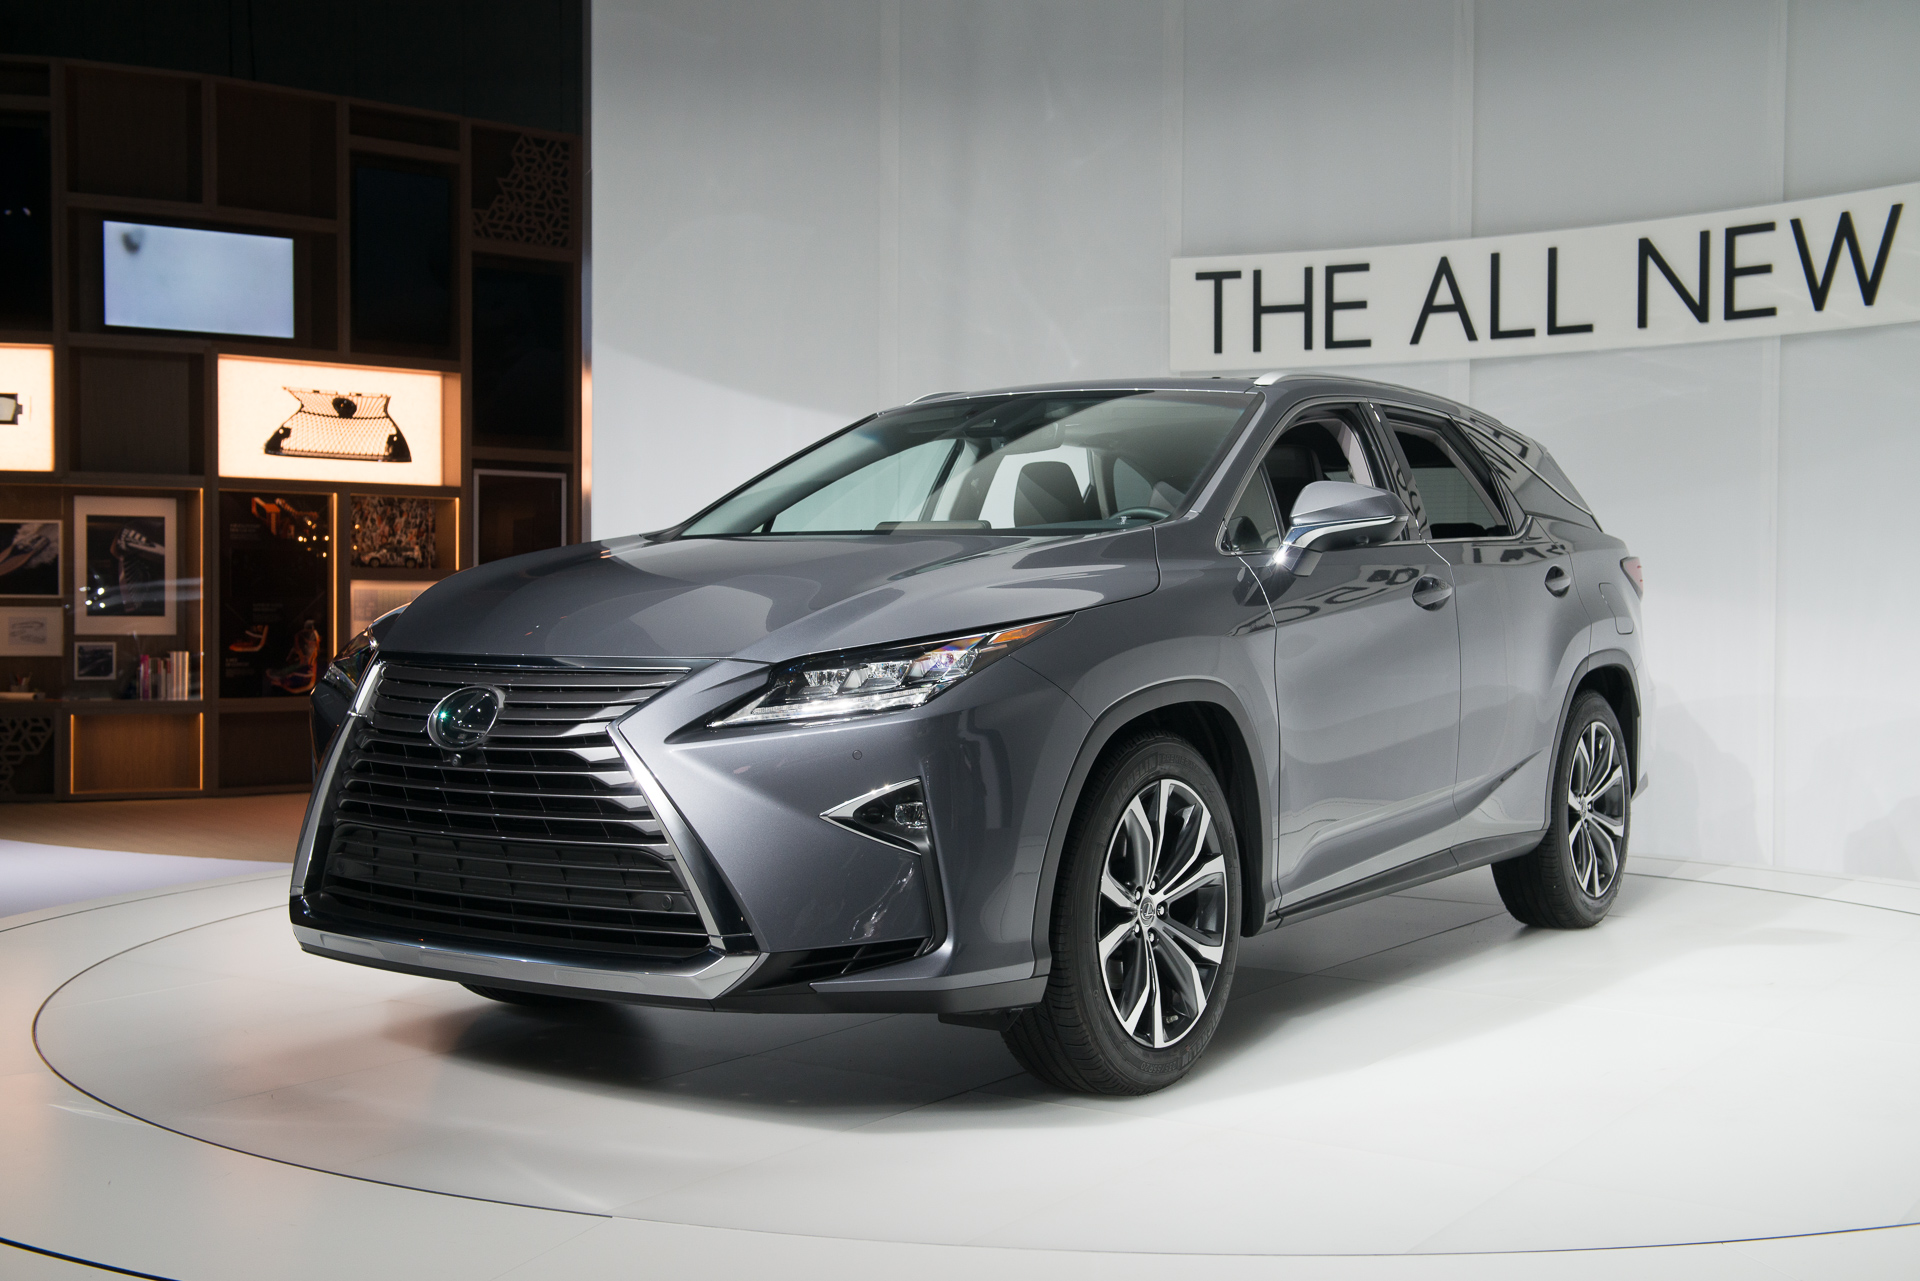 2018 Lexus Rx 450hl Hybrid Three Row Suv Priced From 51 600